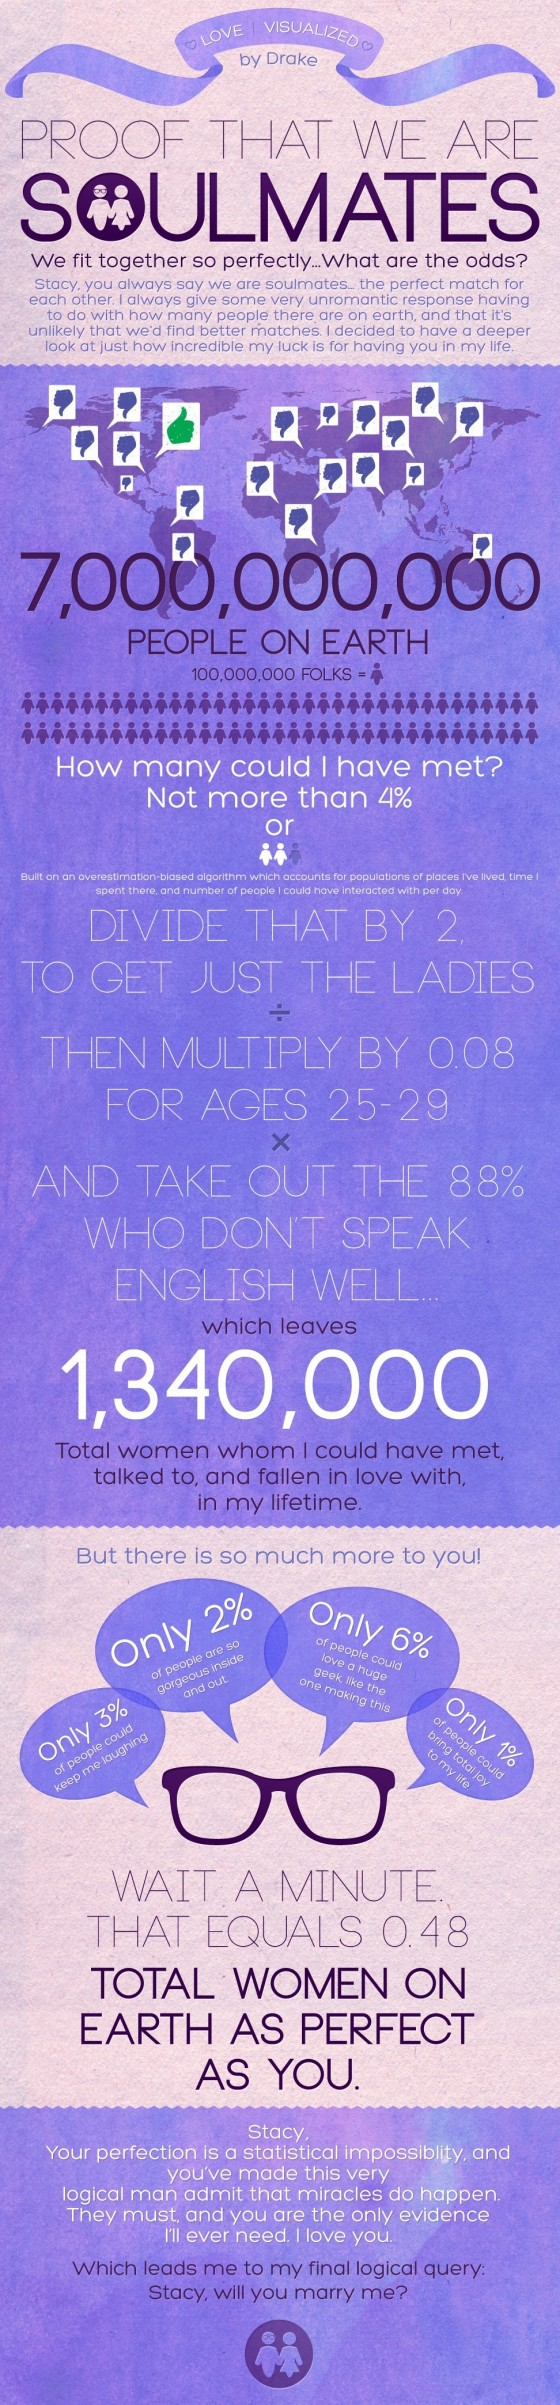 marriage proposal infographic